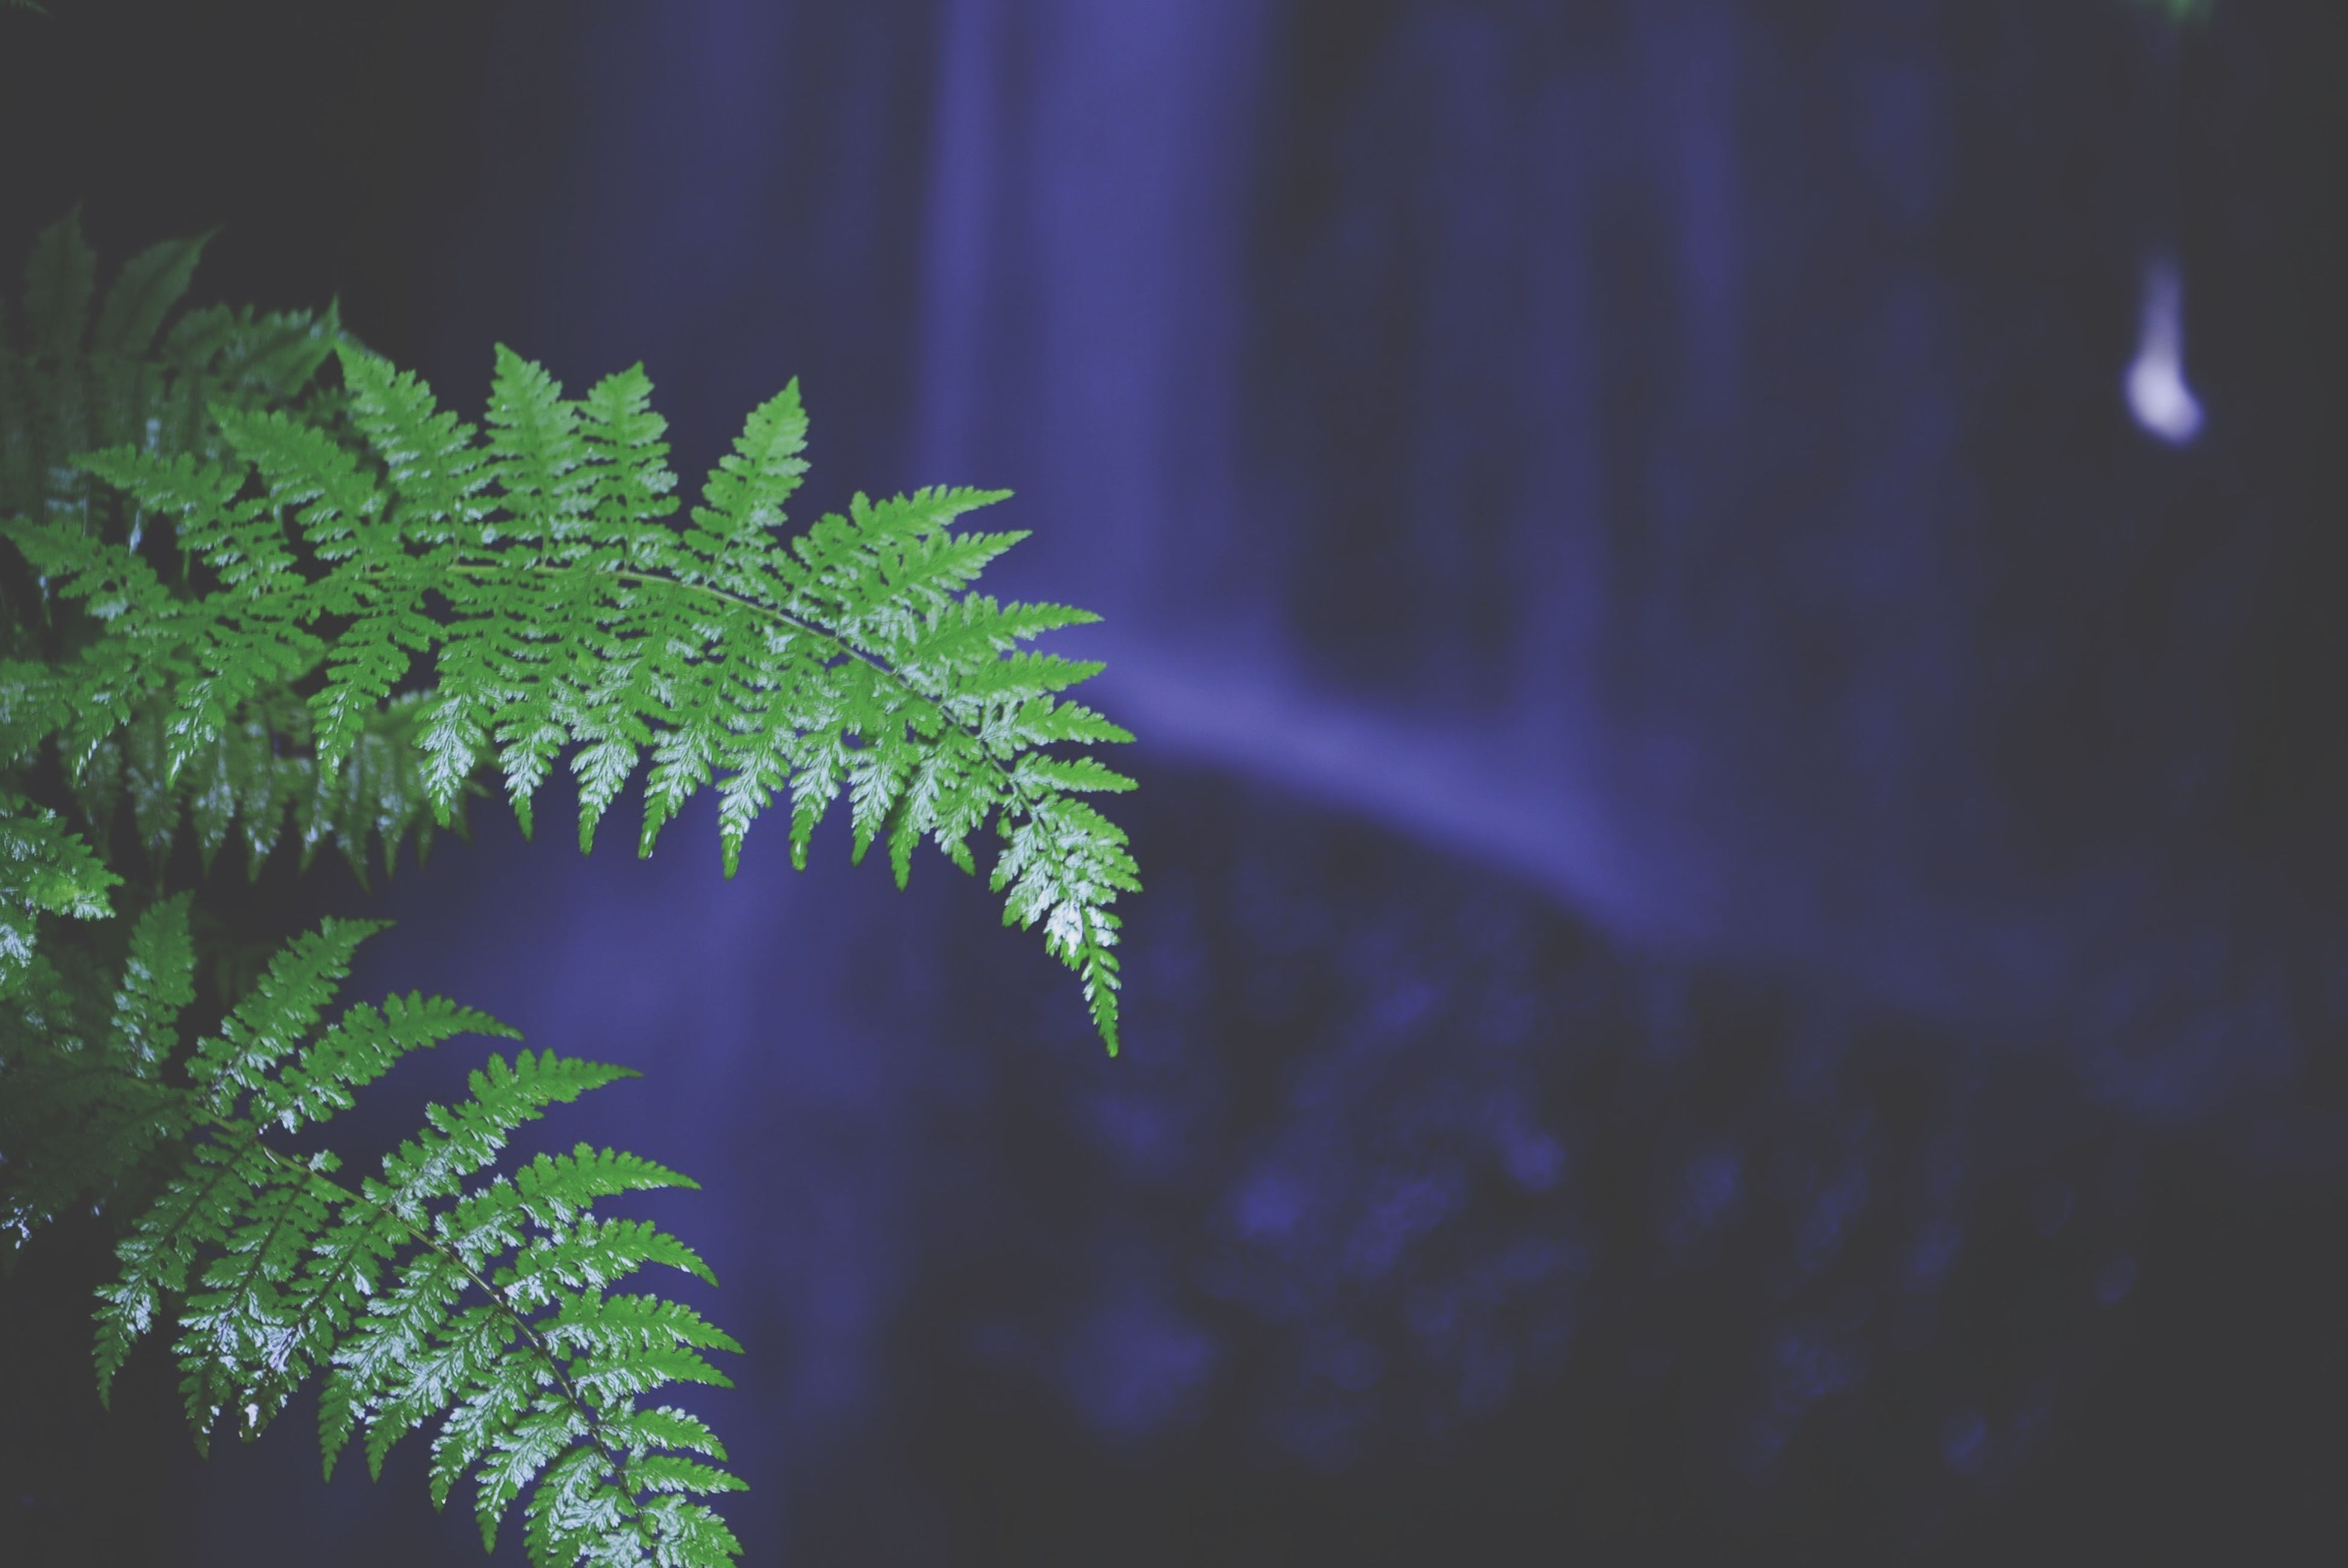 growth, night, nature, leaf, plant, green color, beauty in nature, tranquility, tree, outdoors, branch, no people, illuminated, tranquil scene, close-up, scenics, growing, low angle view, sky, focus on foreground